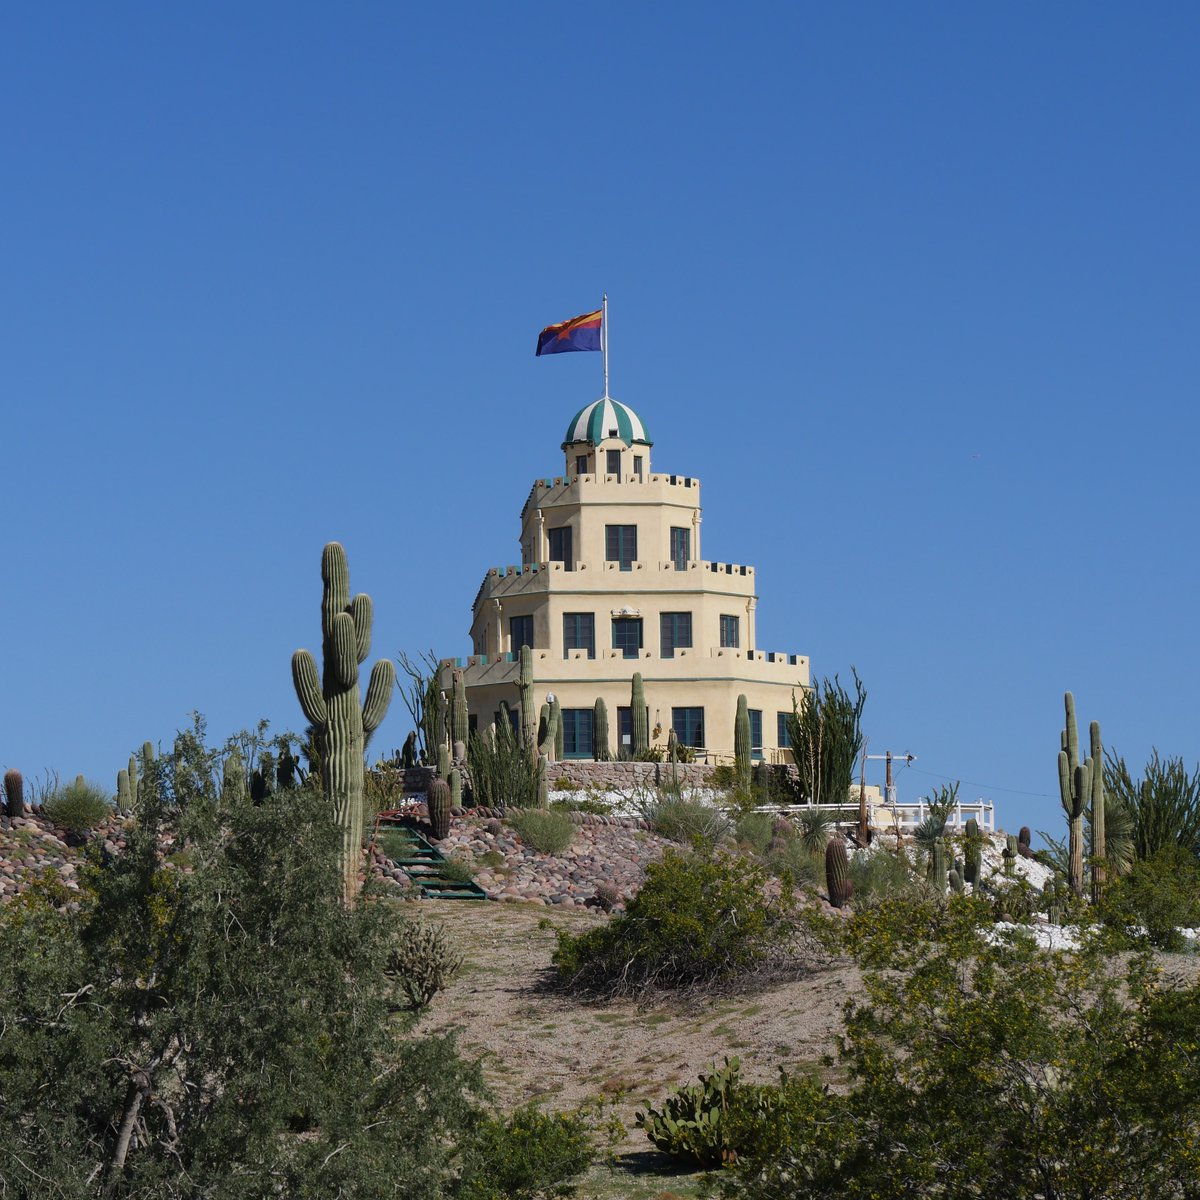 City Of Phoenix Az On Twitter Completed In 1931 The Tovrea Castle At Carraro Heights Is Named In Honor Of The Original Builder Alessio Carraro And Its Second Owners E A And